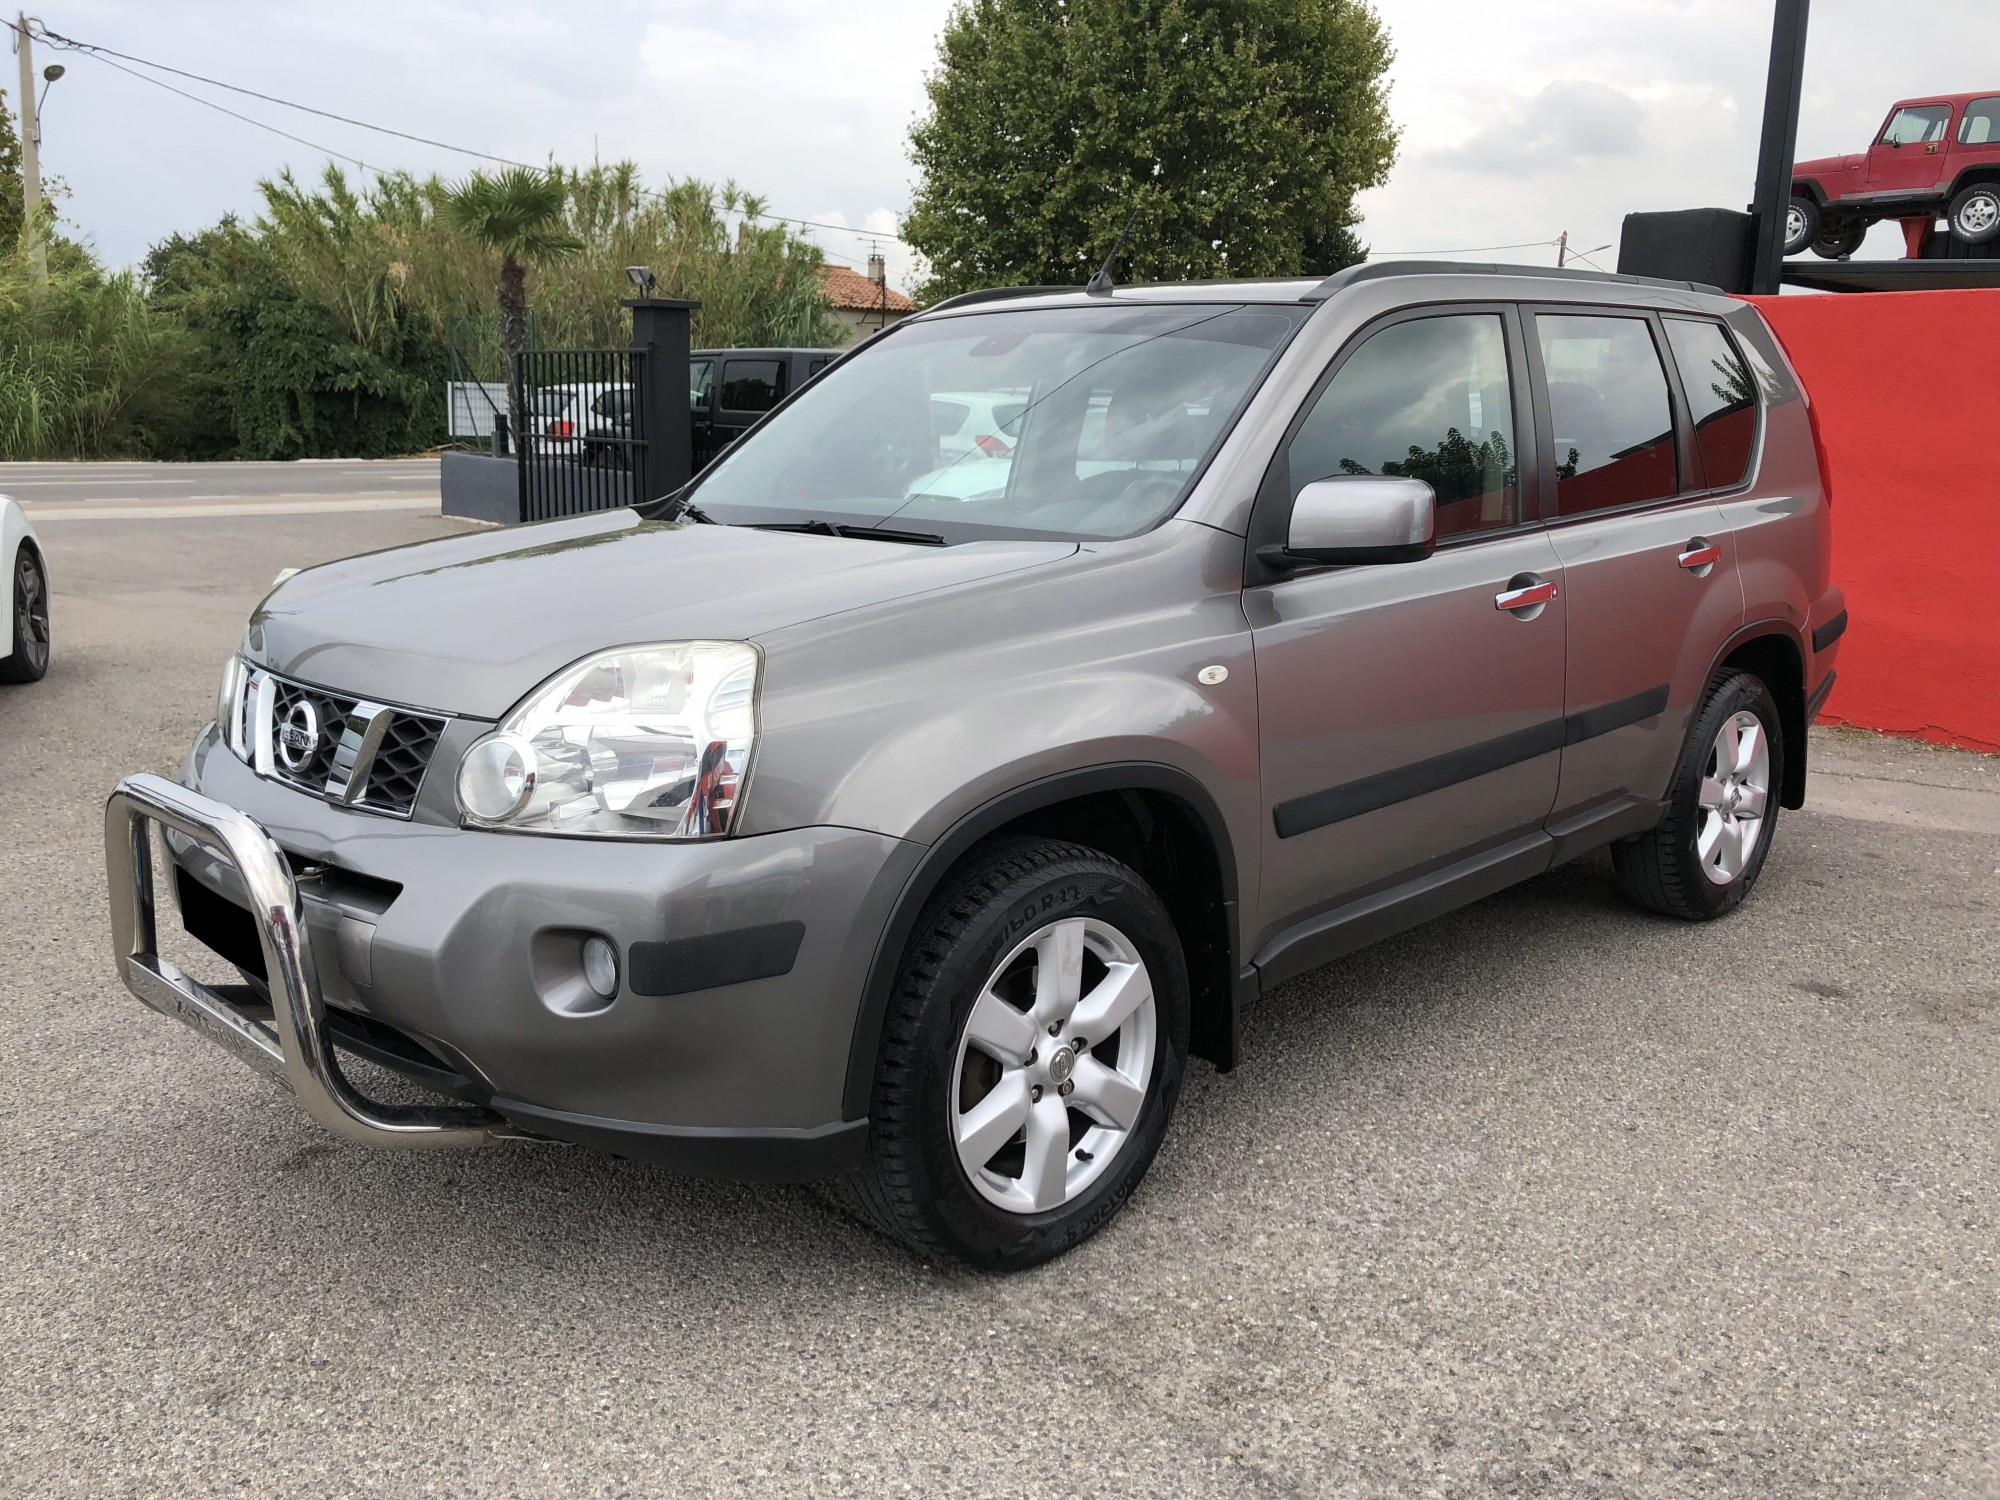 4x4 nissan x trail 2 0 dci 150 ch se all mode 2010 4x4 occasion pro fun 4x4. Black Bedroom Furniture Sets. Home Design Ideas